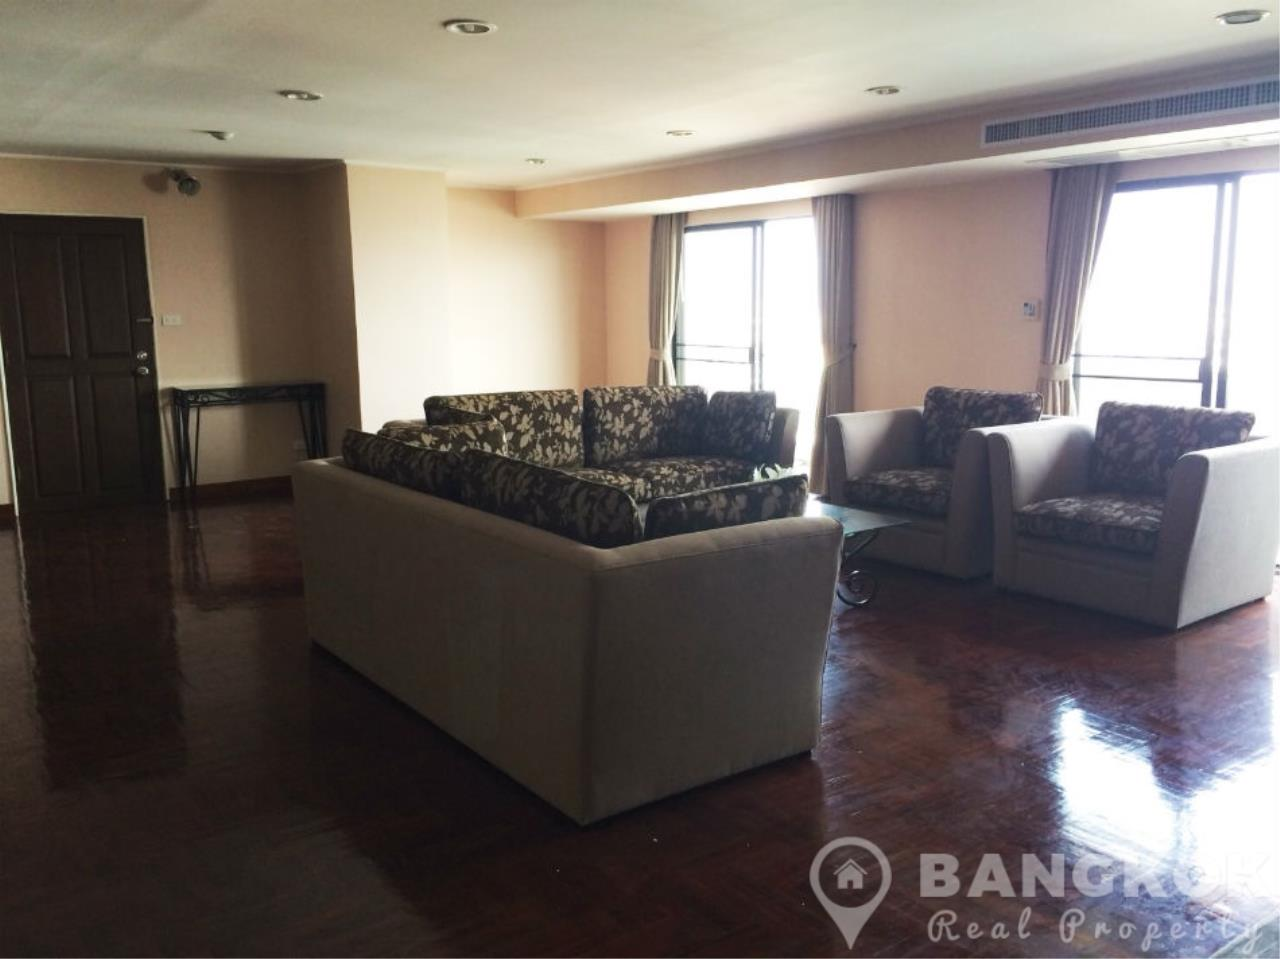 Bangkok Real Property Agency's Casa Viva | Very Spacious 3 Bed 3 Bath Condo in Ekkamai 3